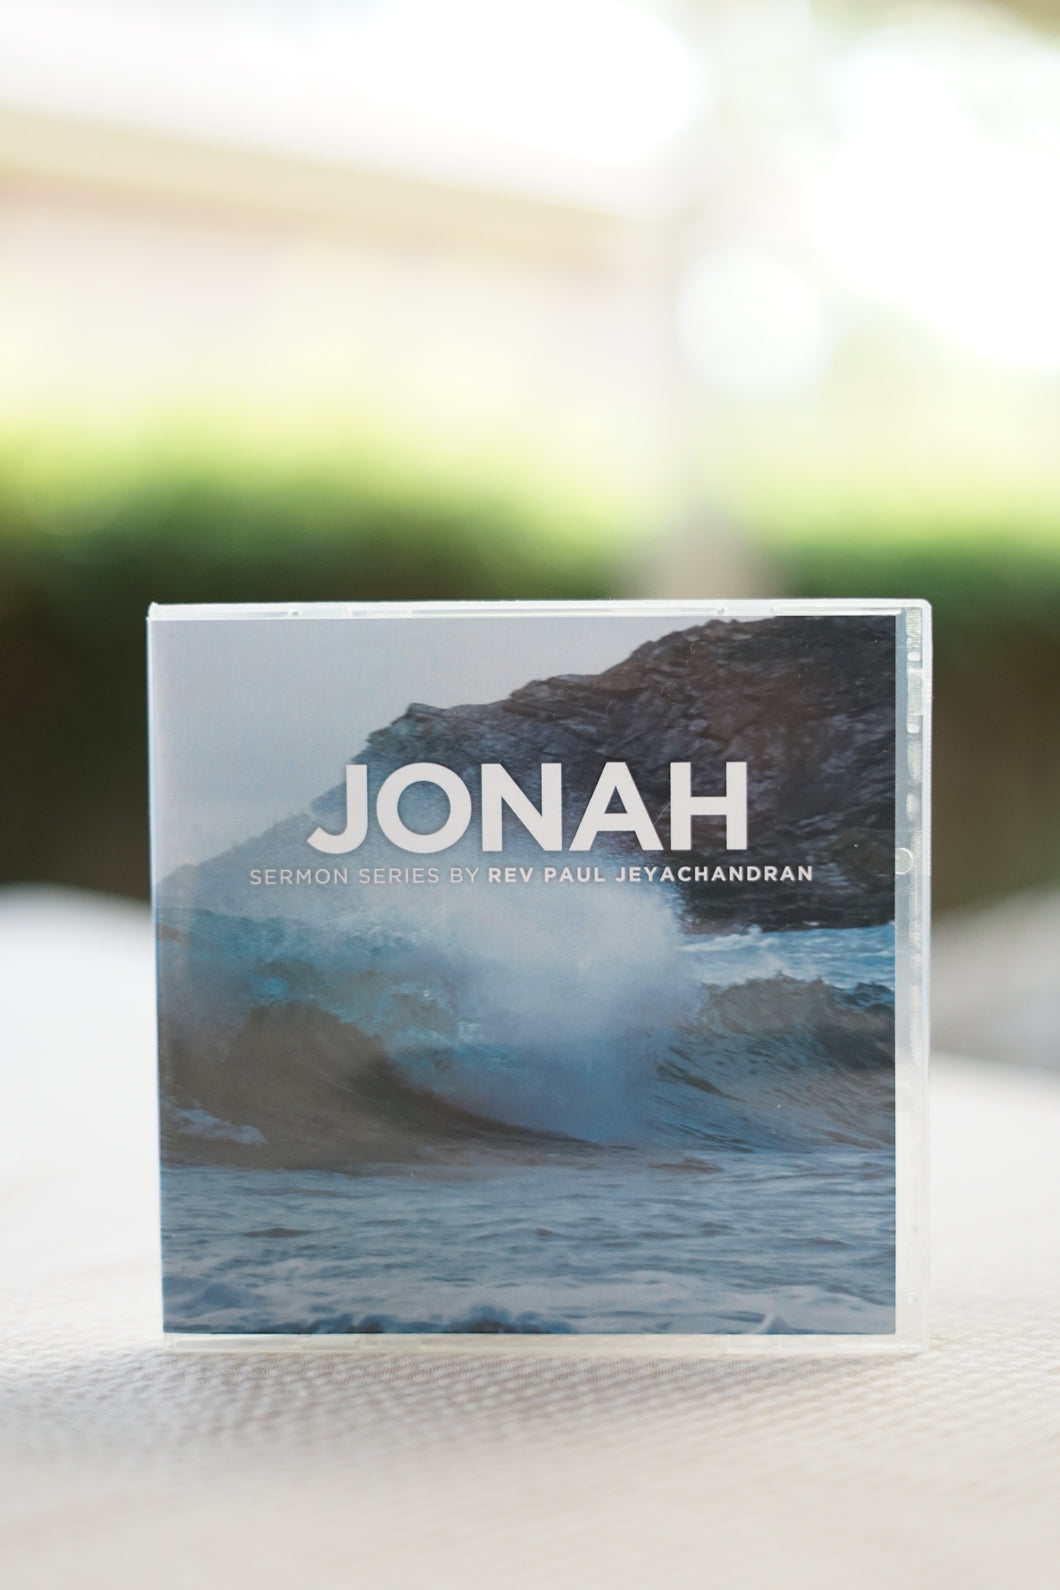 Jonah Sermon Series CD Set